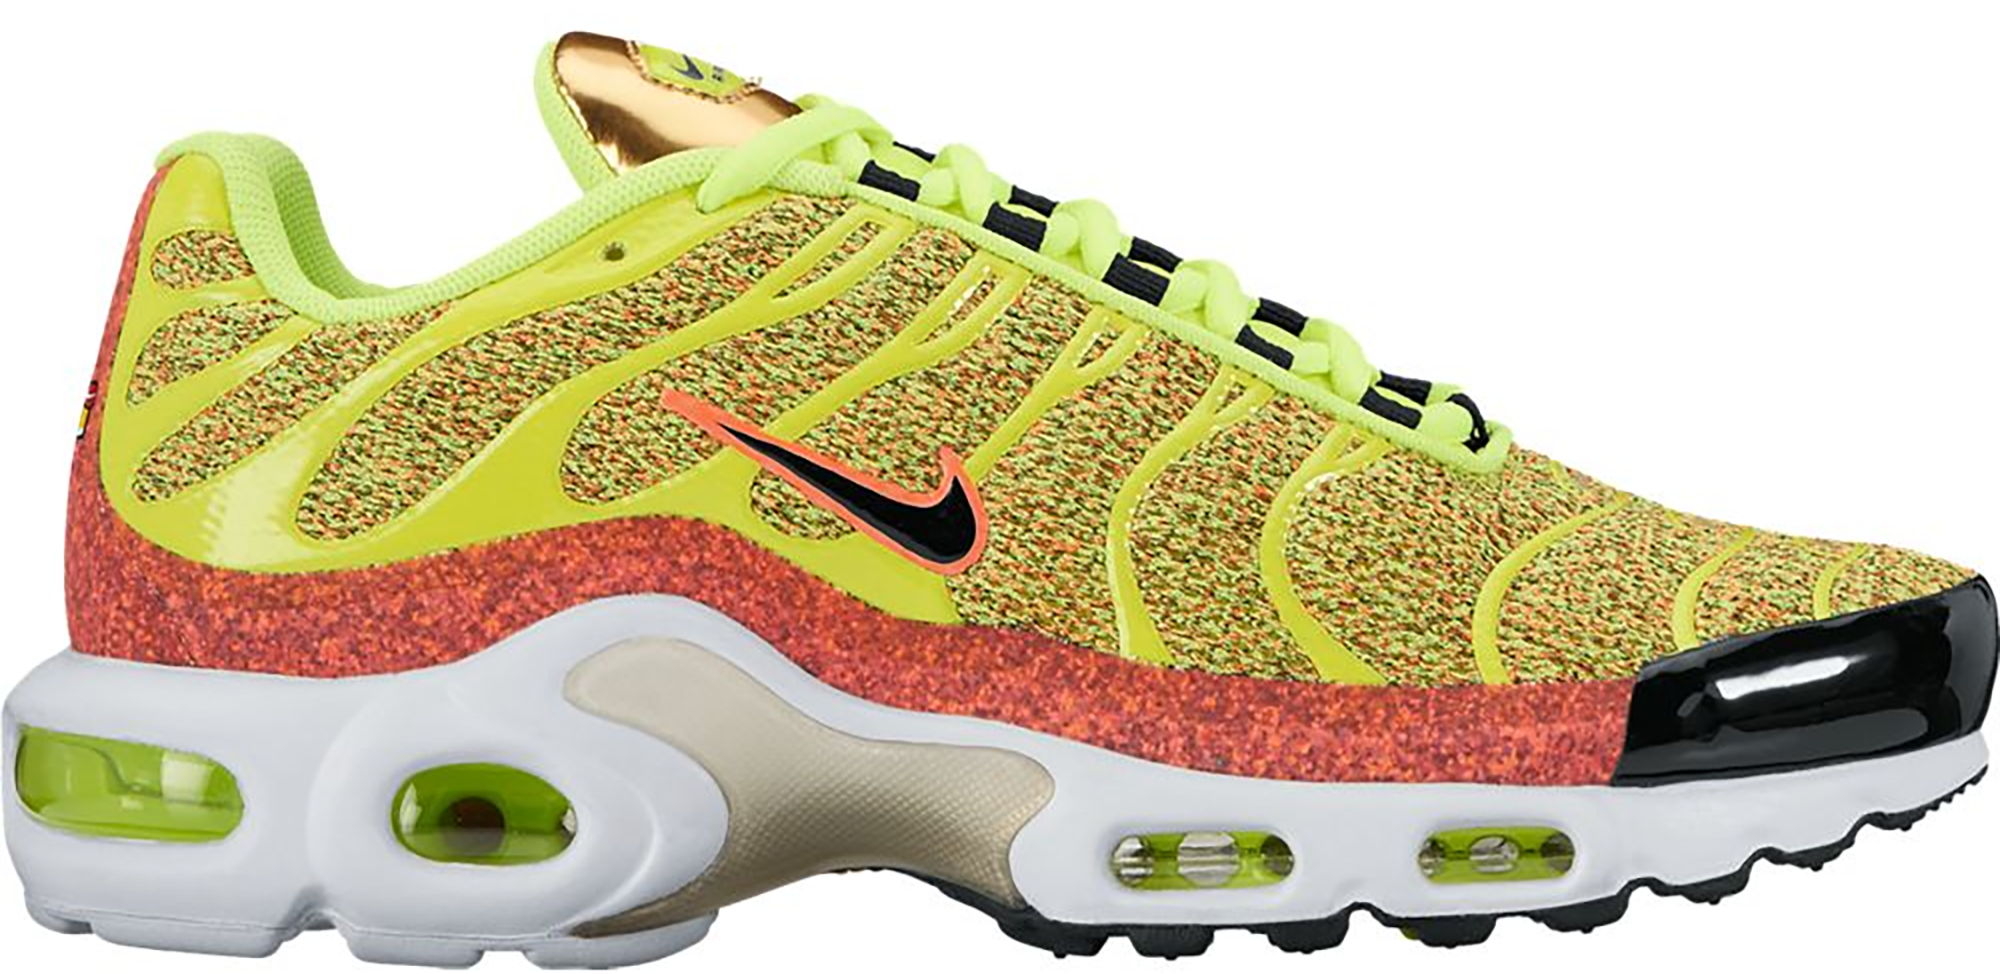 Nike Air Max Plus Volt Hot Punch (W) - 862201-700